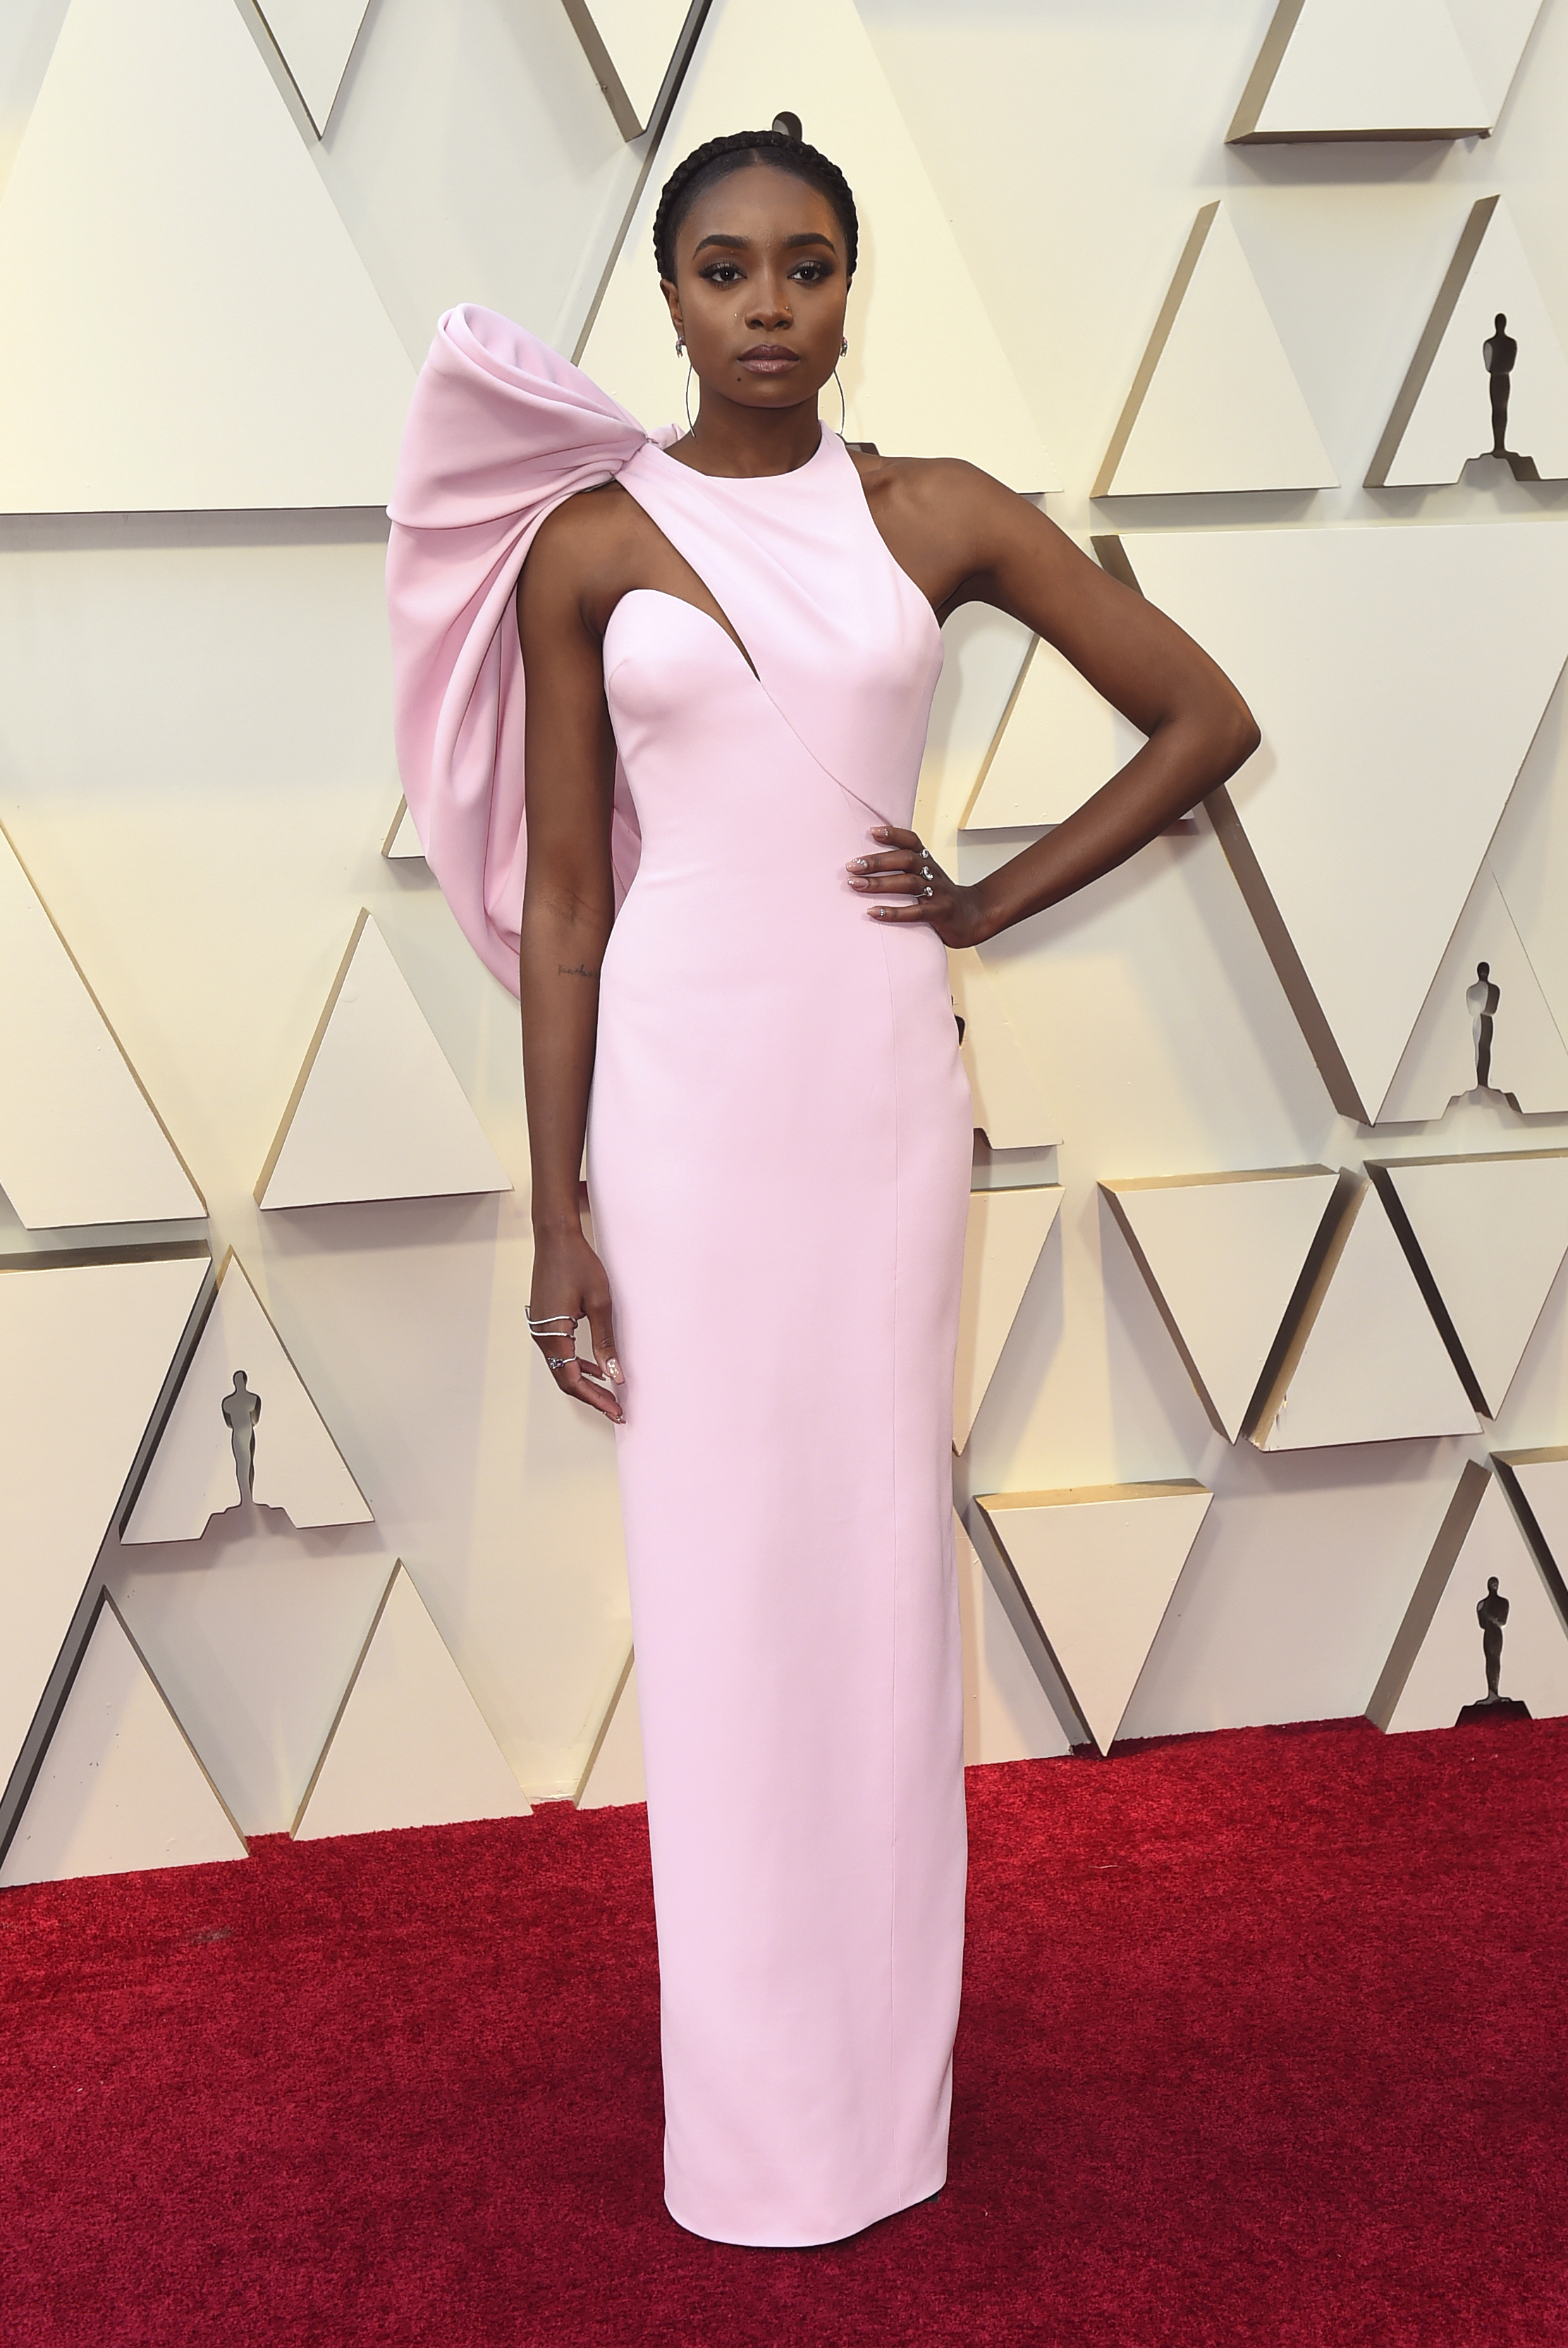 Kiki Layne arrives at the Oscars on Sunday, Feb. 24, 2019, at the Dolby Theatre in Los Angeles. (Photo by Jordan Strauss/Invision/AP)